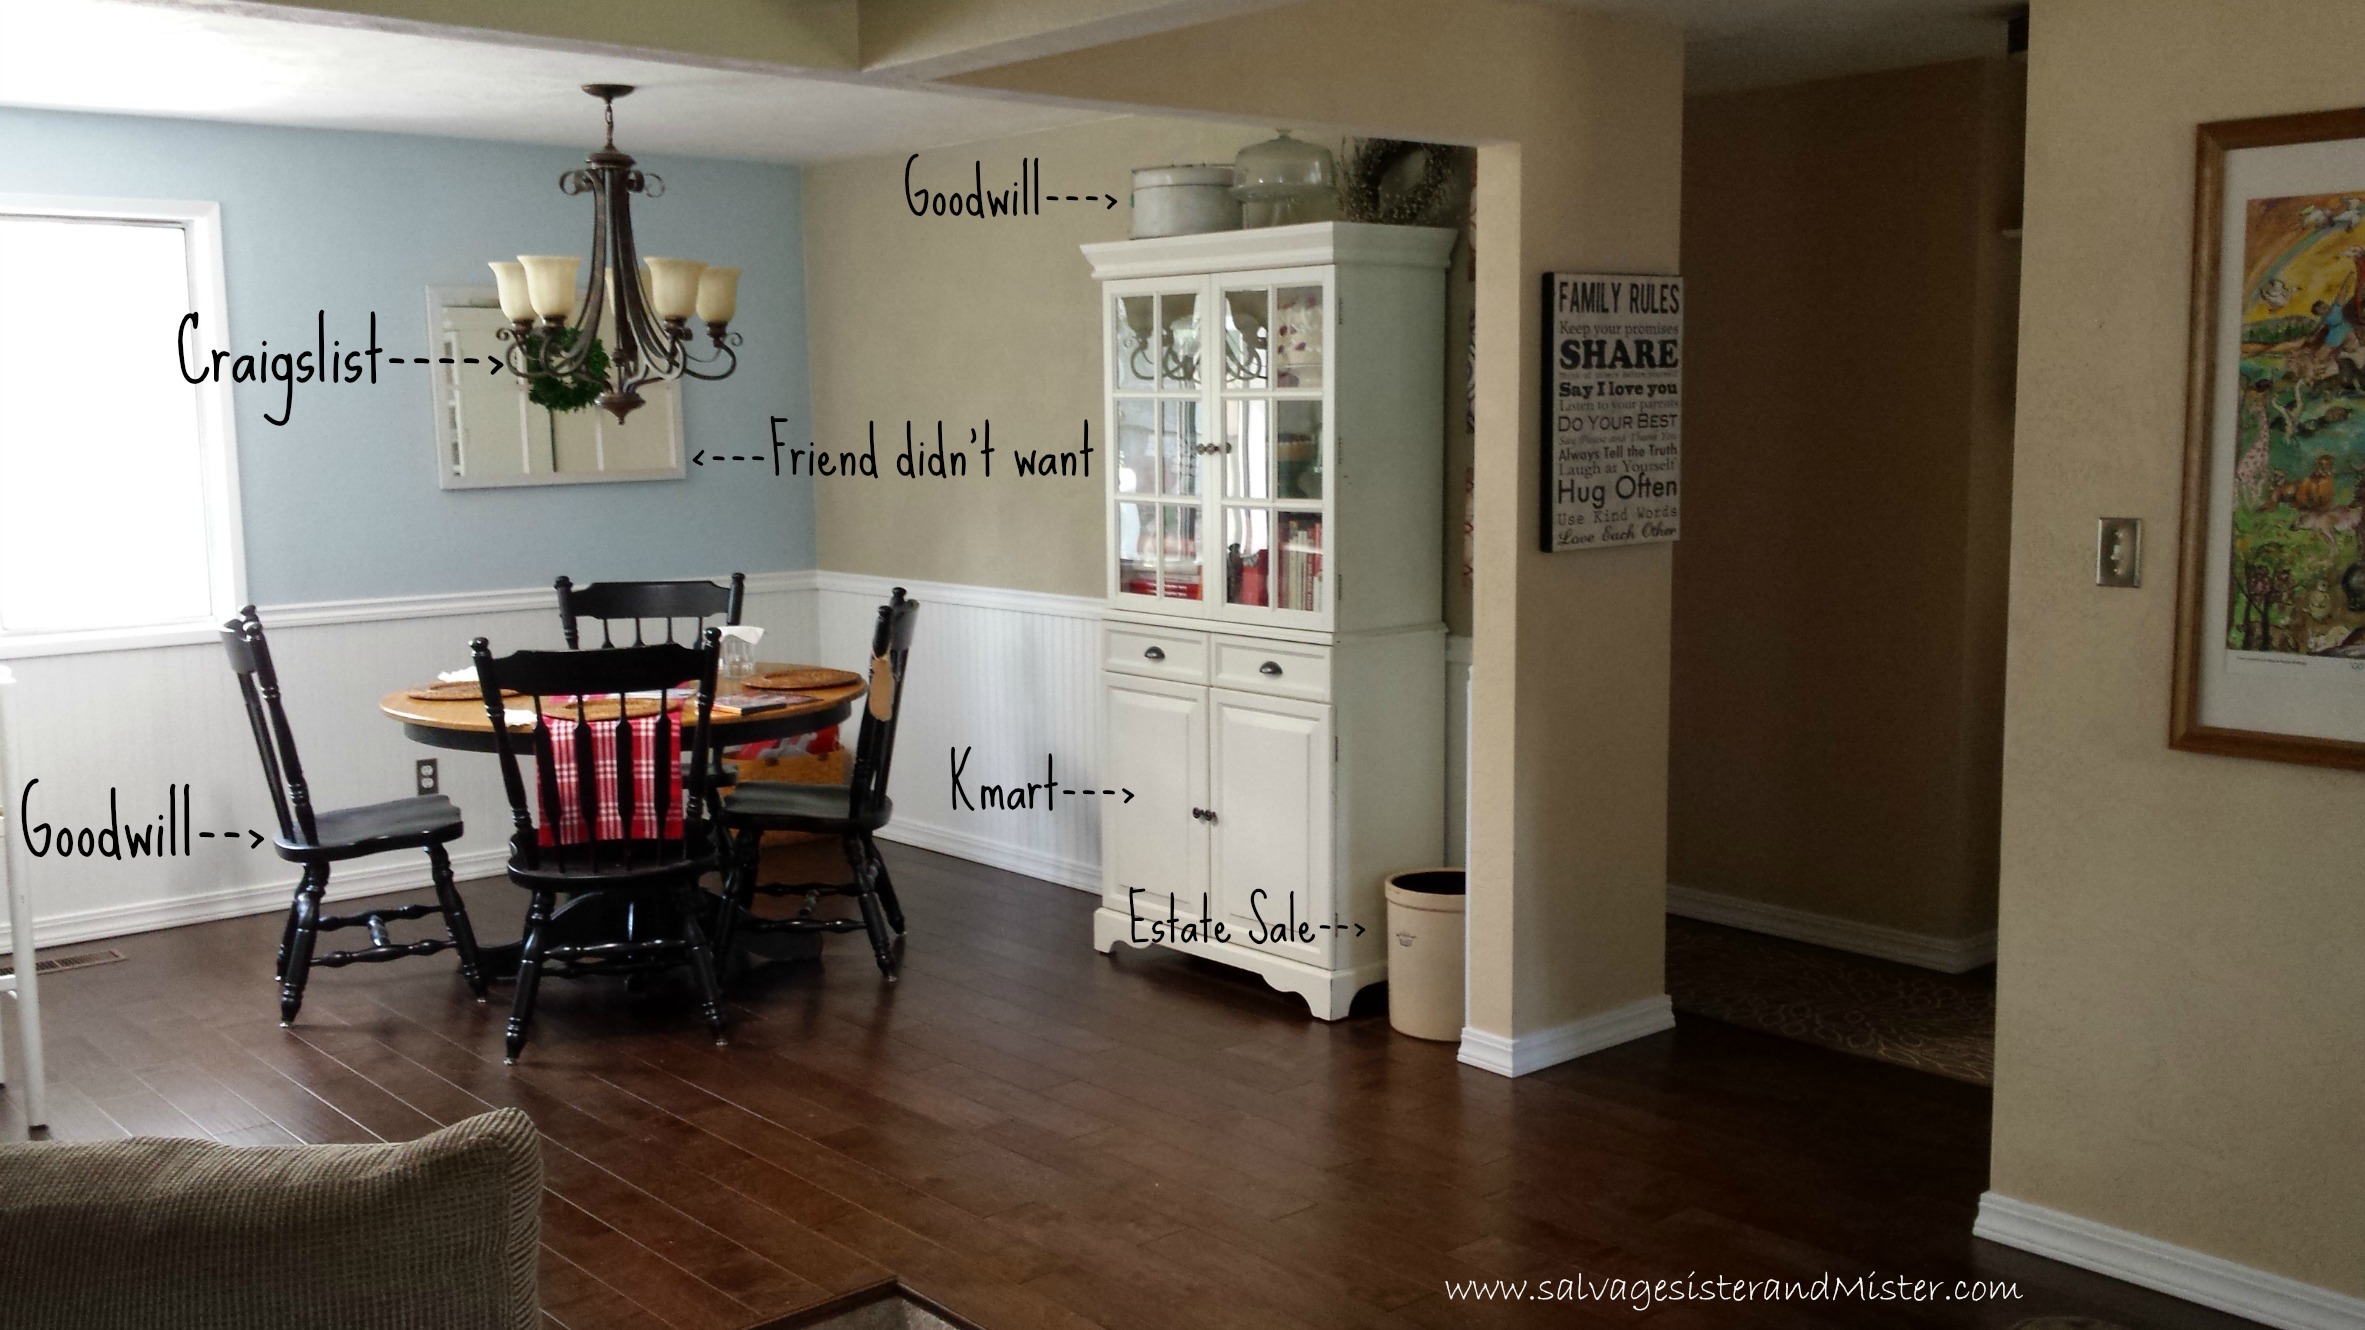 Greatest Dining Room Makeover (On a Budget) - Salvage Sister and Mister UI58